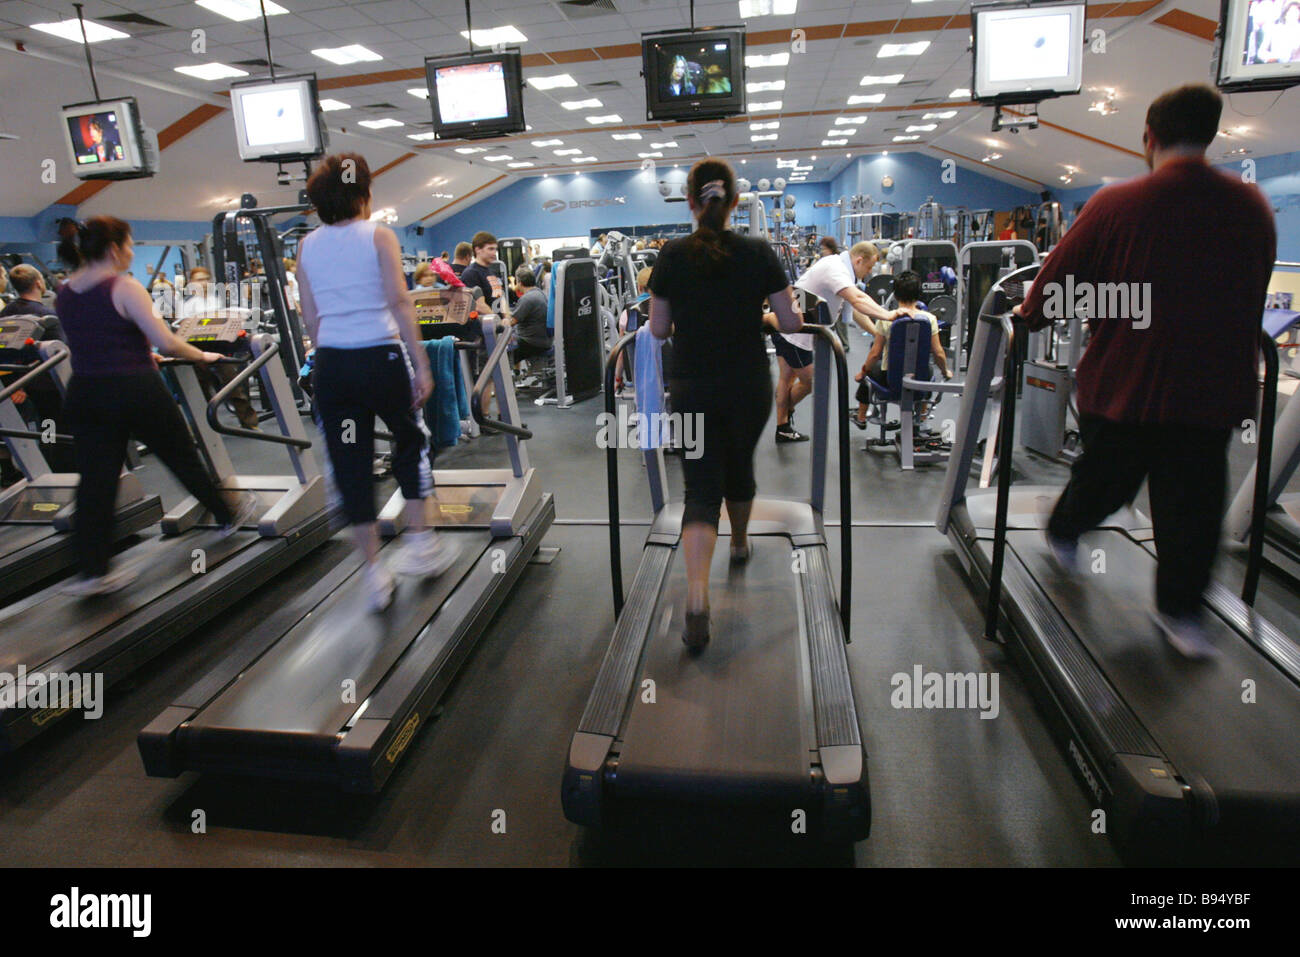 Janinn Fitness Center Rennstrecke Simulator Zimmer Moskau Stockbild